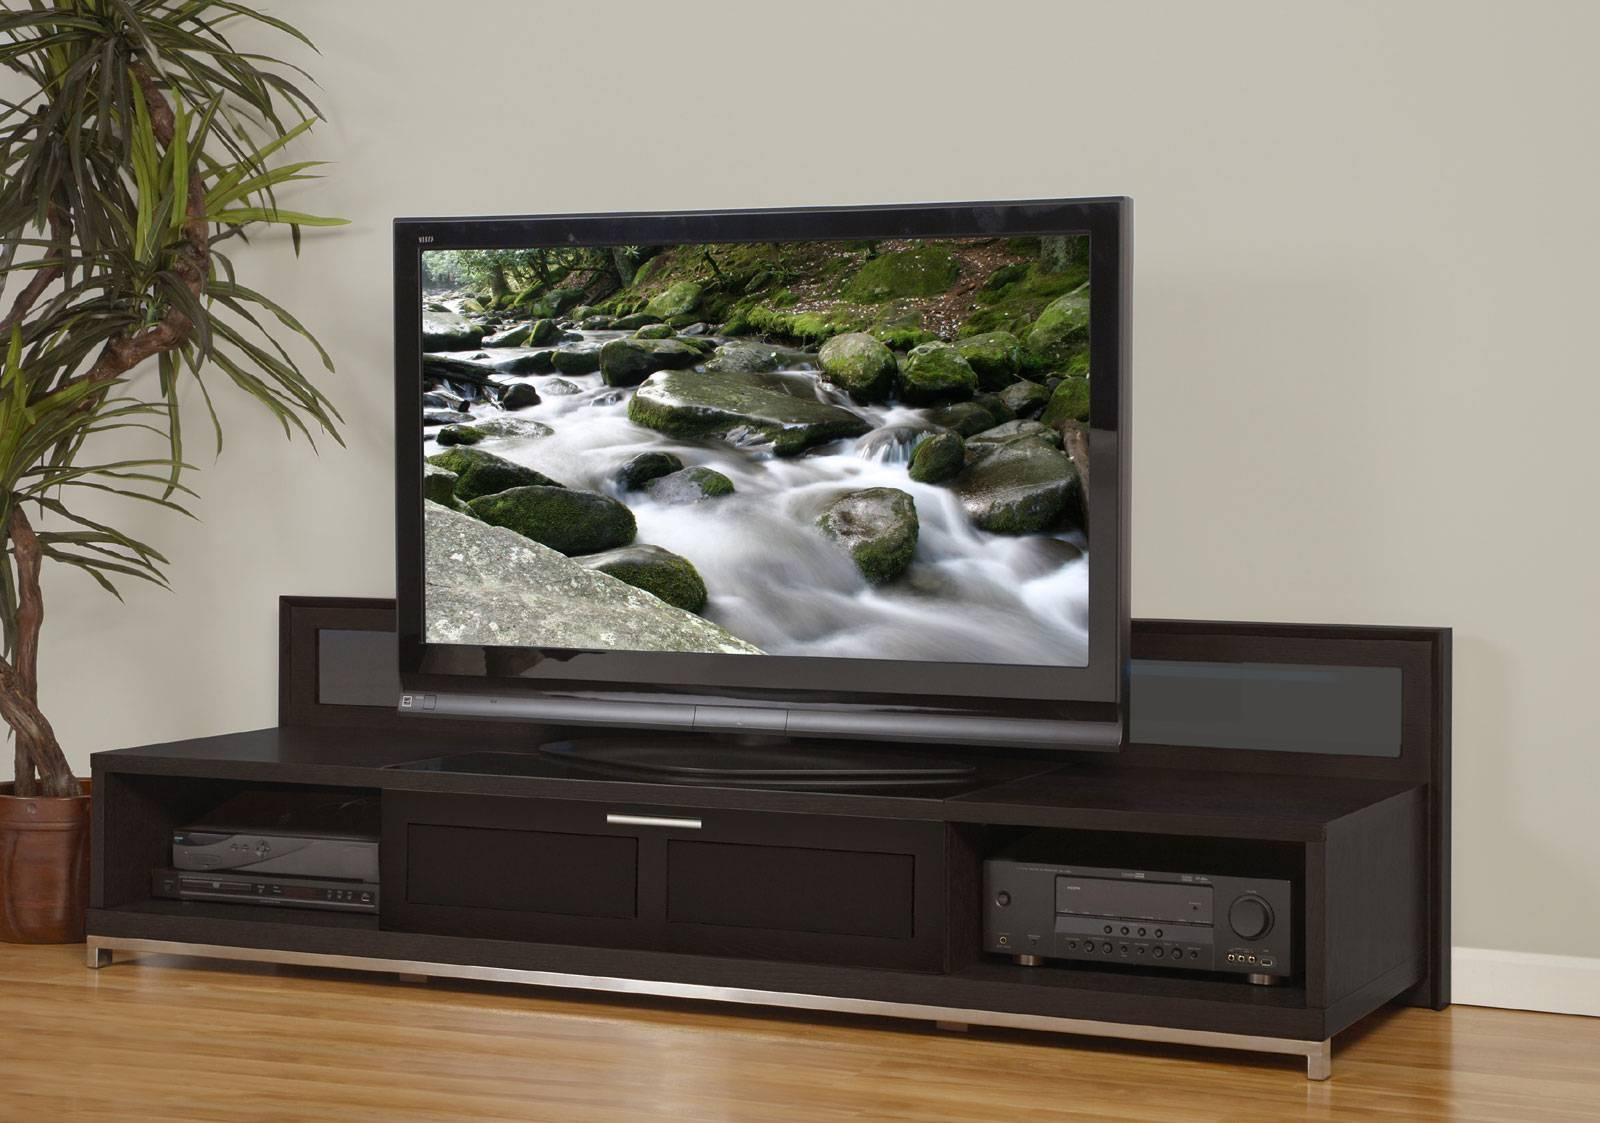 Tv Stands For 55 Inch Flat Screen Within Wooden Tv Stands For 55 Inch Flat Screen (View 6 of 15)